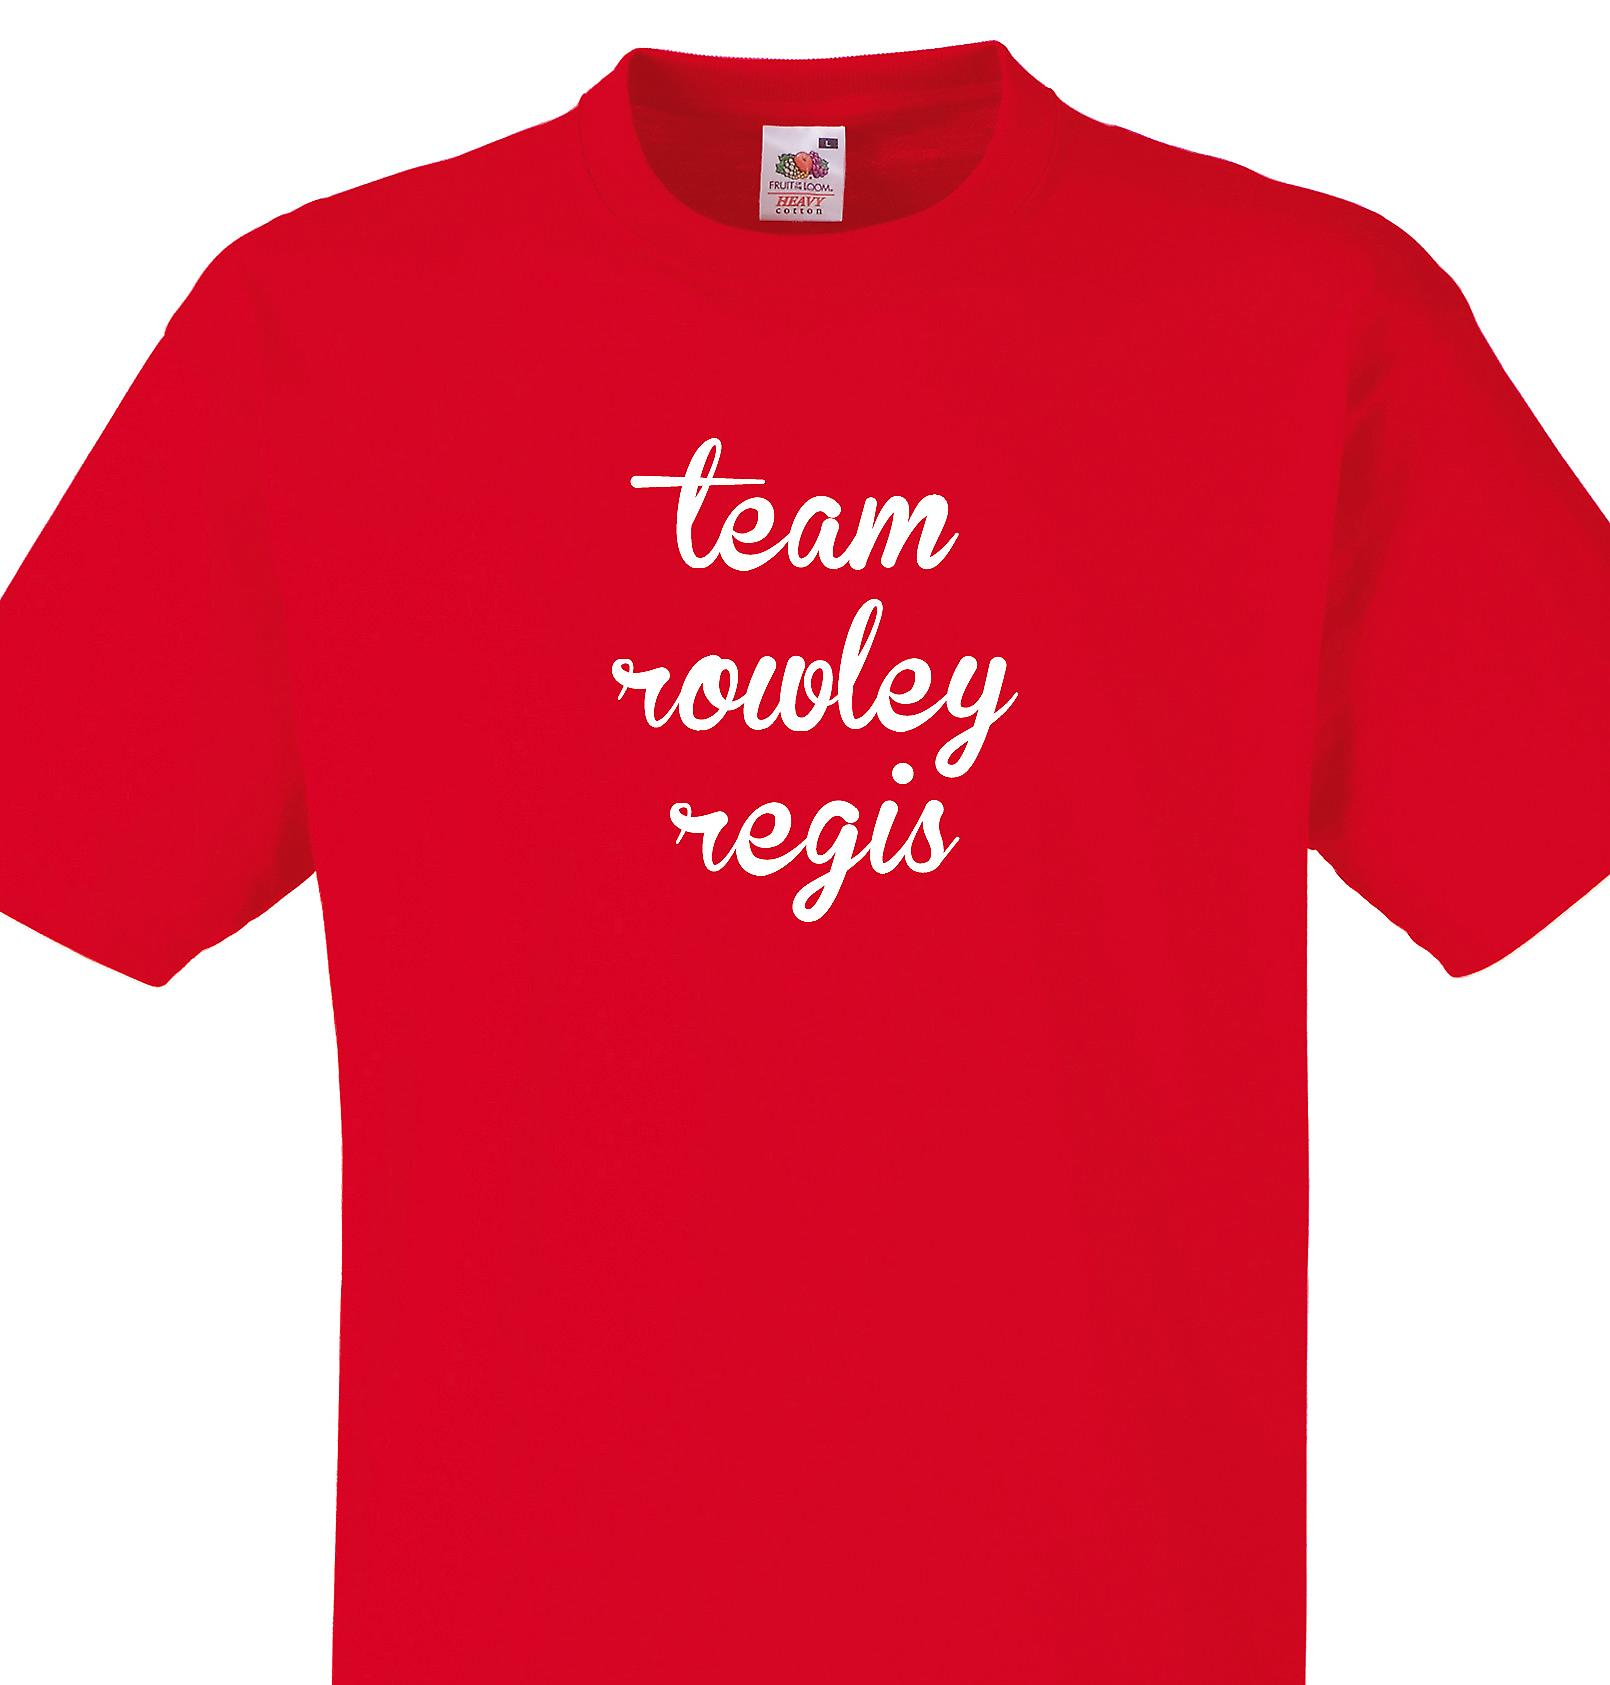 Team Rowley regis Red T shirt